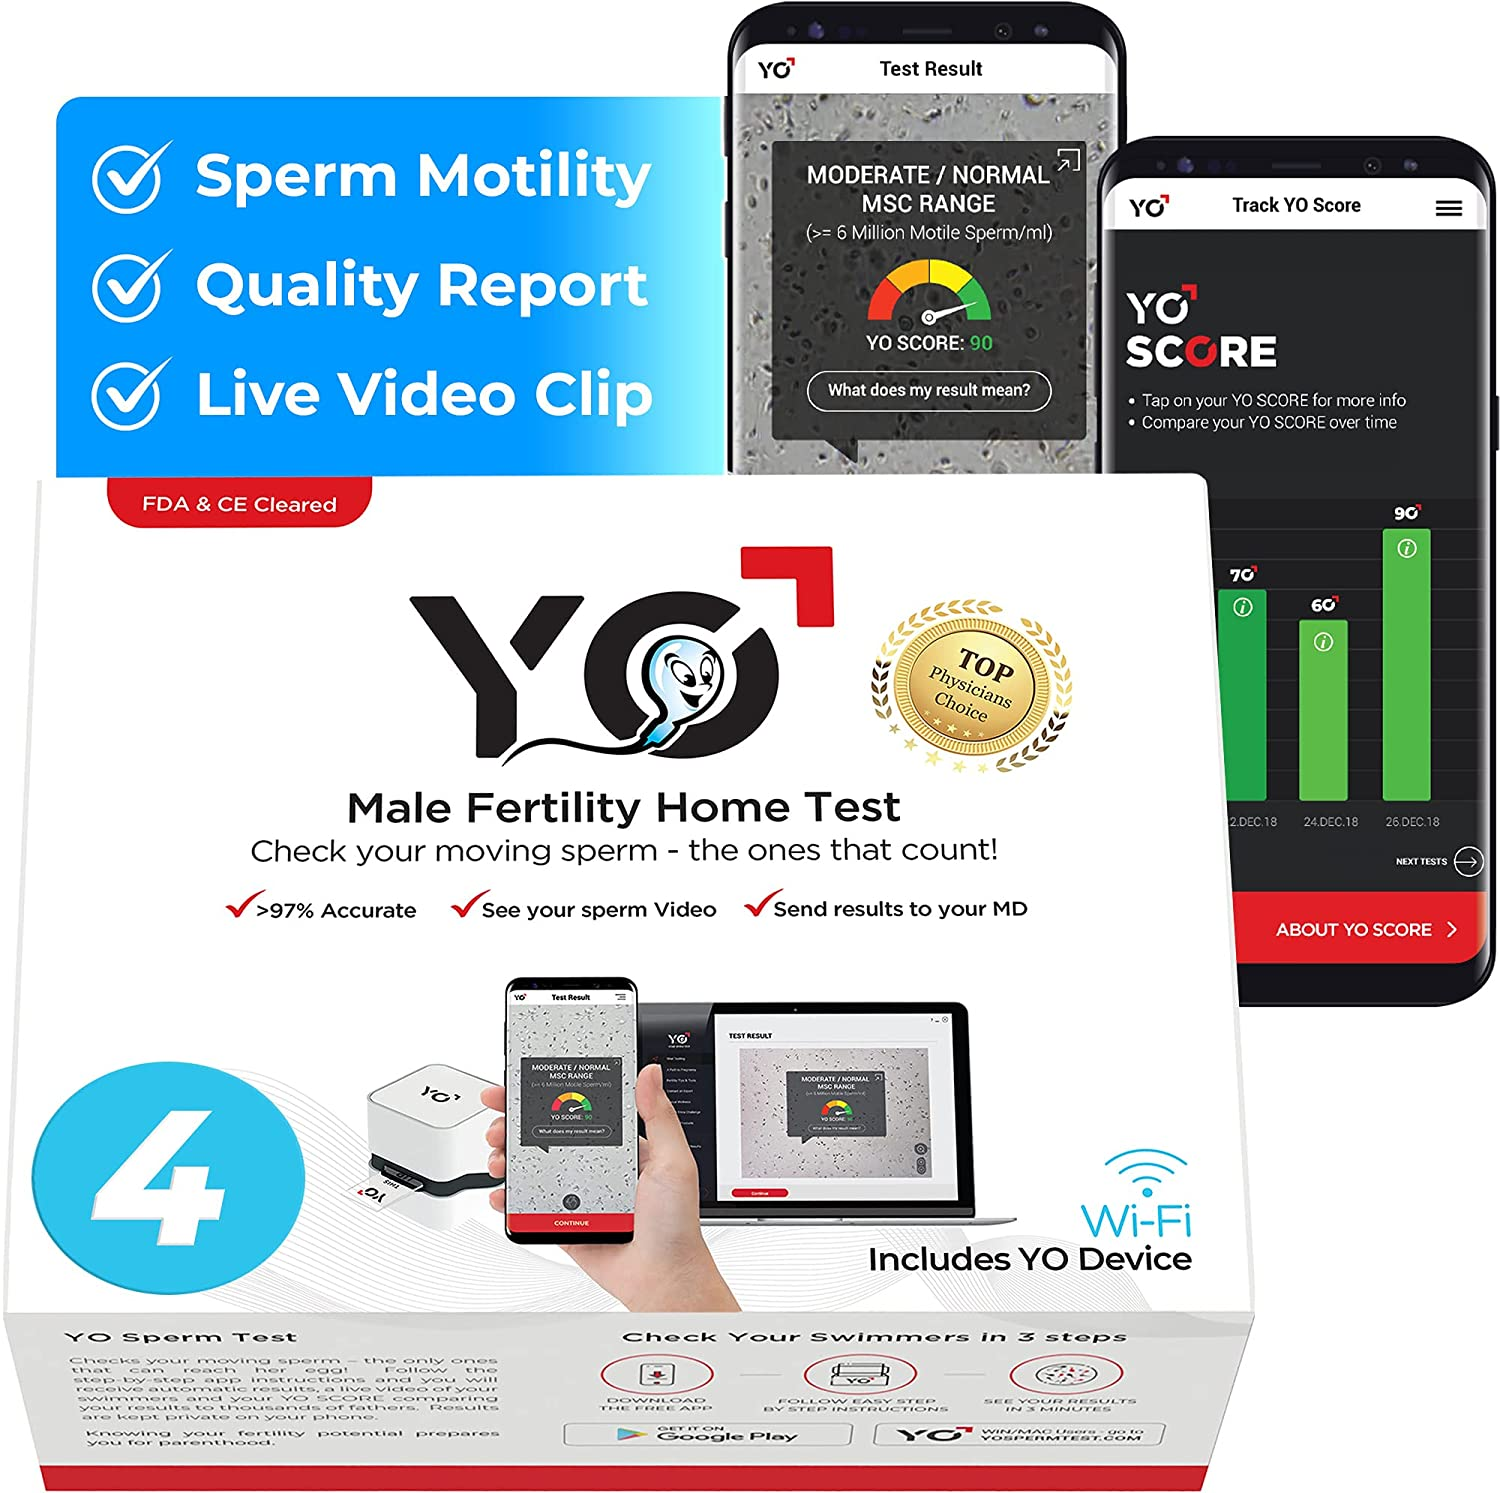 YO Home Sperm Test for Apple iPhone, Android, MAC and Windows PCs | Includes 4 Tests | Men's at Home Fertility Test | Check Moving Sperm and Record Videos